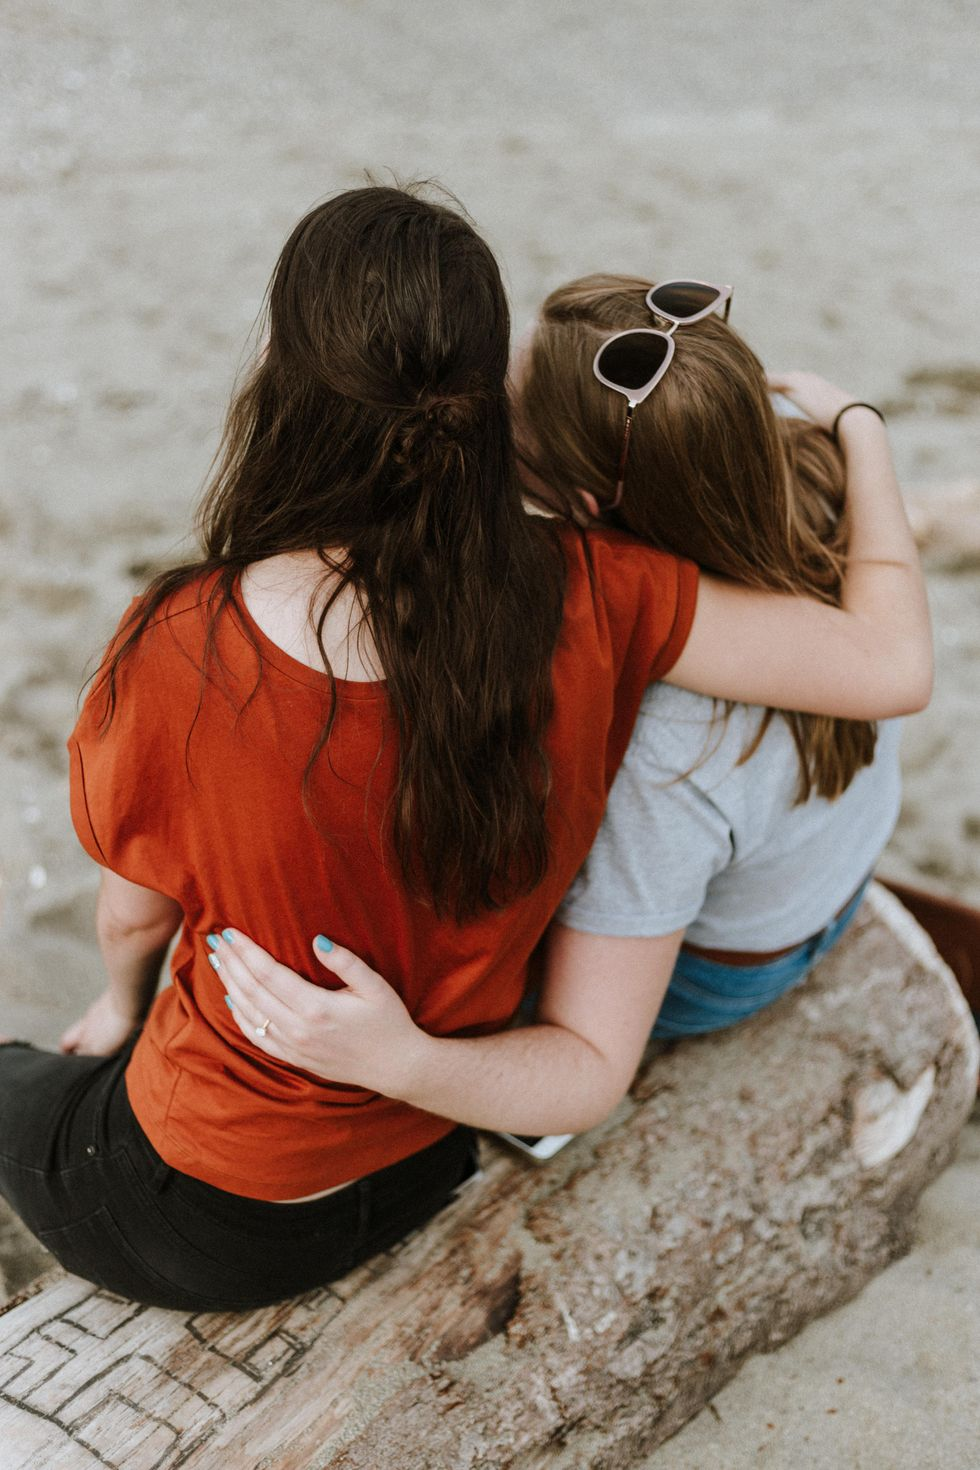 6 Ways To Thoughtfully Support Your Friends Without Sacrificing Your Own Mental Health